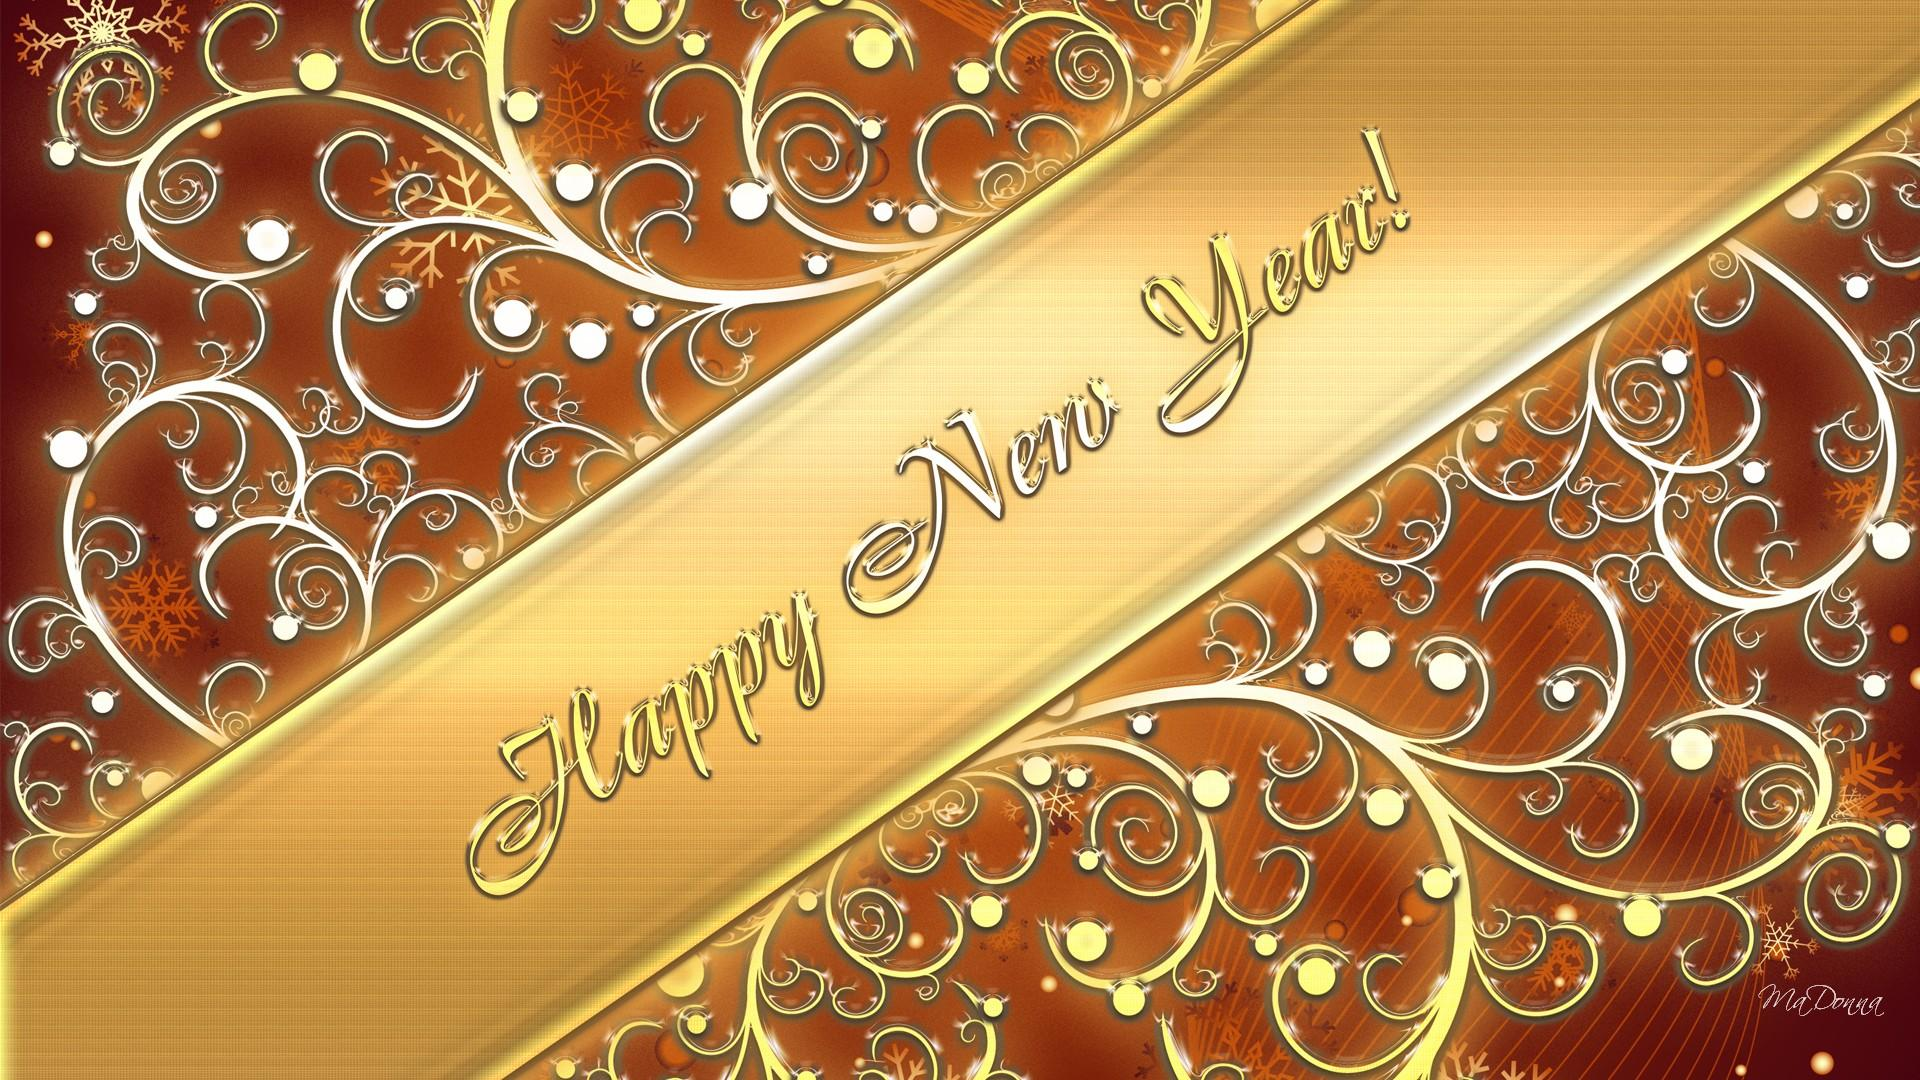 Happy New Year 2015 Card Images HD